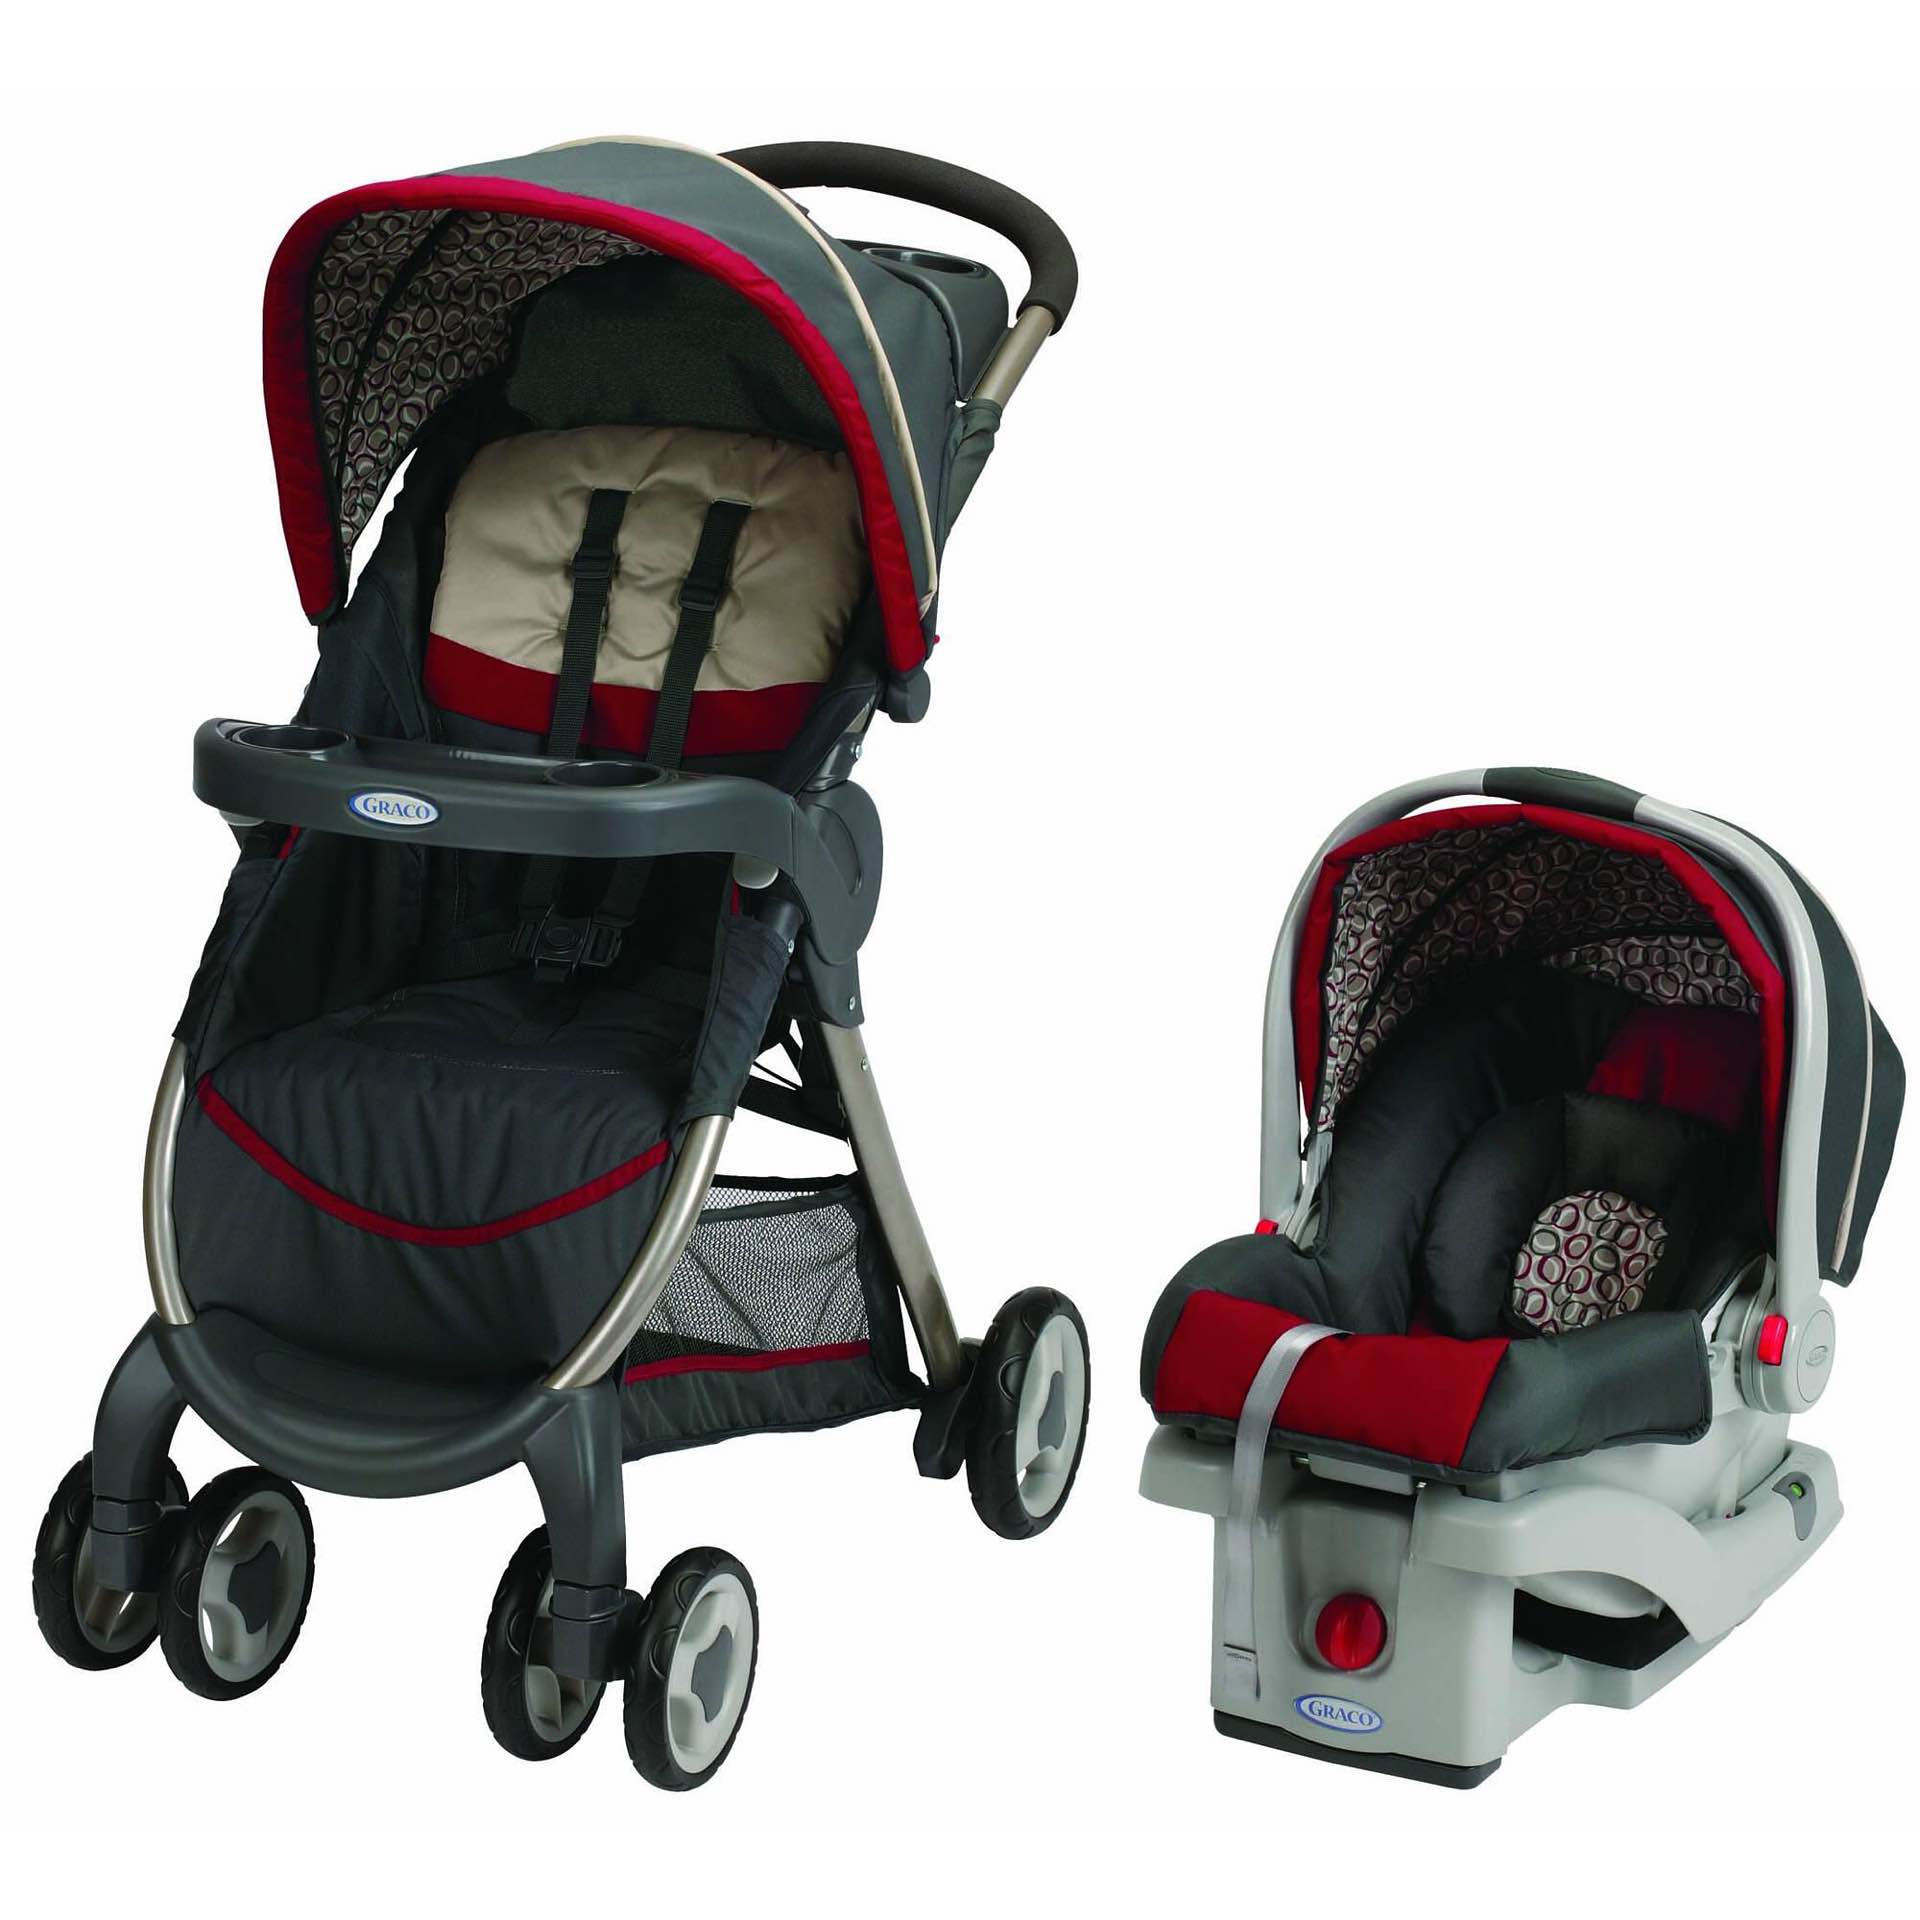 Graco's Click Connect travel system. ($170)